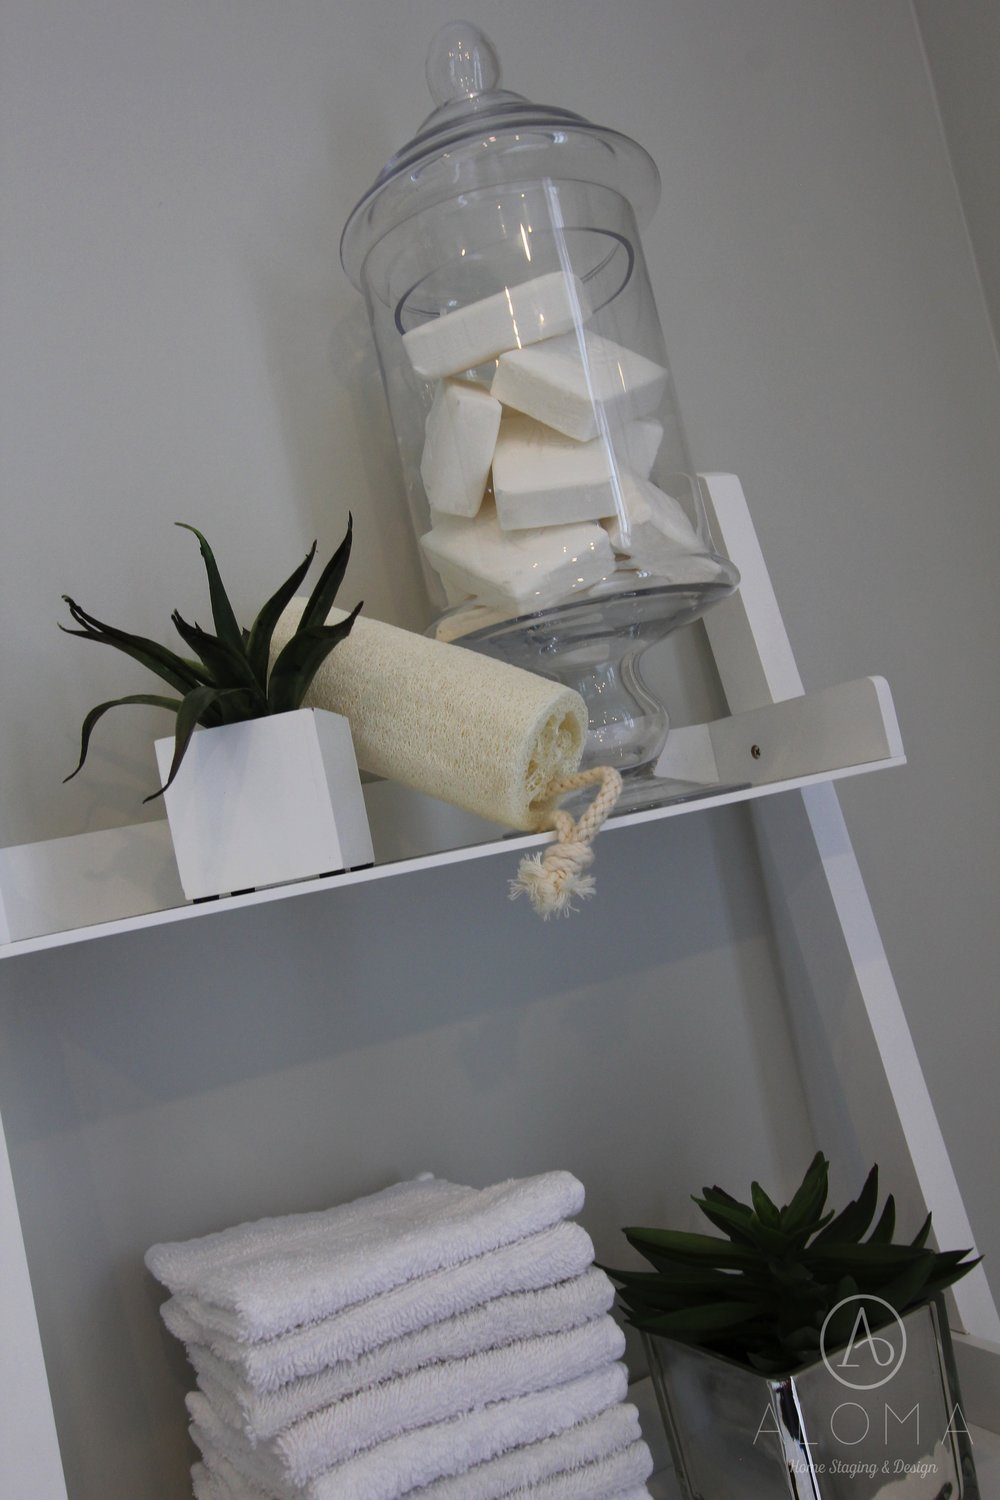 Soap in glass jar by ALOMA Home Staging & Design